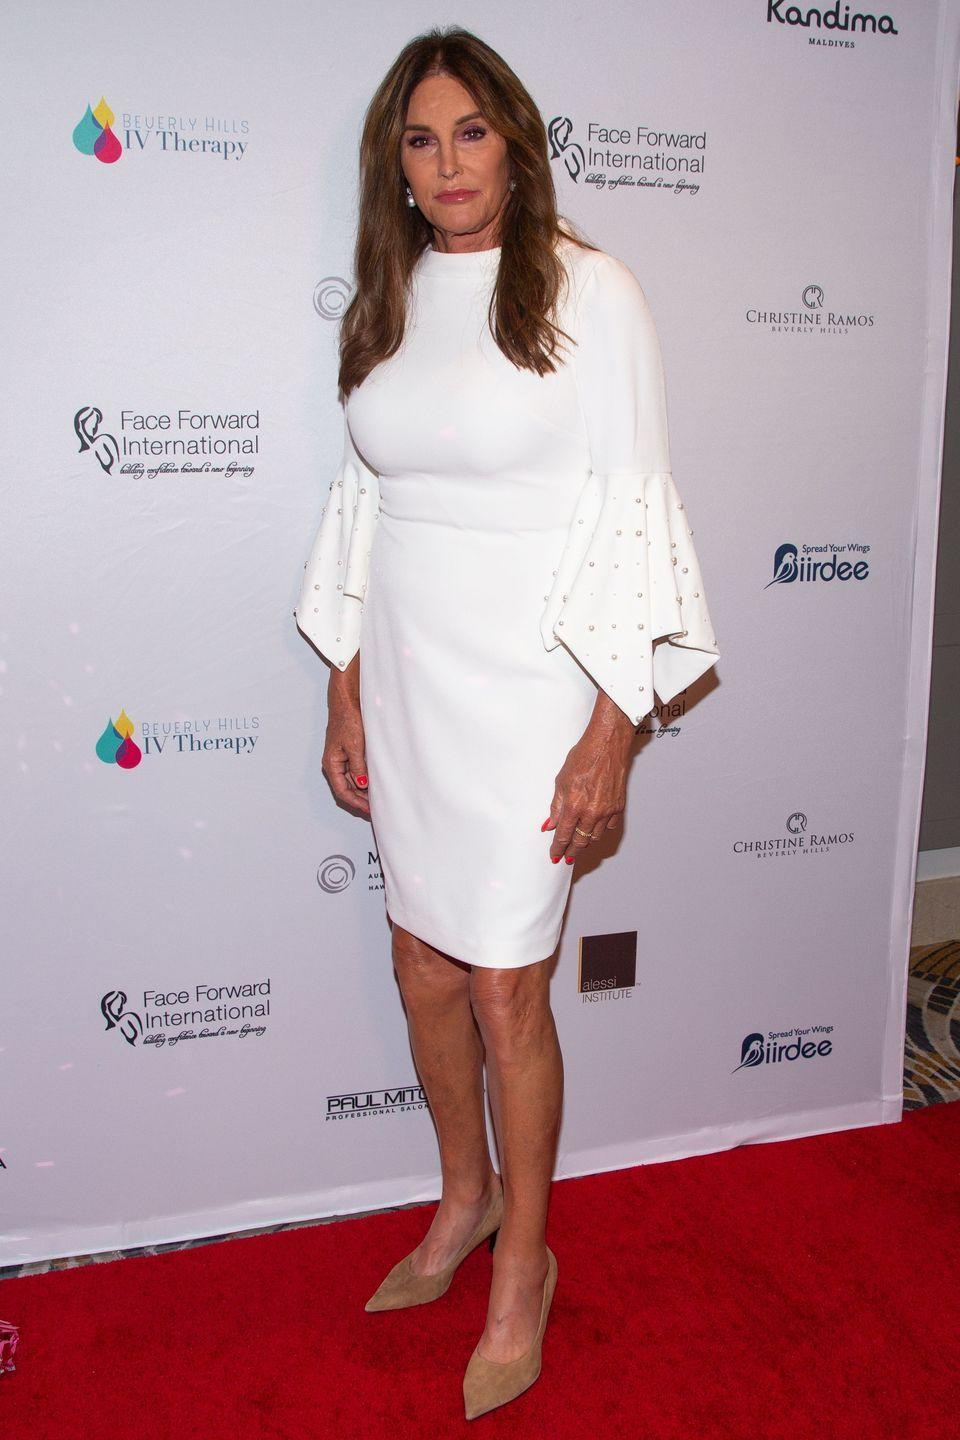 """<p>It might surprise some to learn that Caitlyn Jenner is<a href=""""https://www.celebritynetworth.com/richest-athletes/olympians/caitlyn-jenner-net-worth/"""" rel=""""nofollow noopener"""" target=""""_blank"""" data-ylk=""""slk:the third wealthiest Kardashian-Jenner"""" class=""""link rapid-noclick-resp""""> the third wealthiest Kardashian-Jenner</a>. Aside from her appearances on <em>Keeping Up With the Kardashians</em>, and her own short-lived show, <em>I Am Cait</em>, she also published a memoir,<em>The Secrets of My Life. </em></p><p>On top of that, Caitlyn spends a lot of time on the public speaking circuit and works with various companies. As a former Olympian, Caitlyn was making money long before KUWTK though via endorsements and speeches and appearances. </p>"""